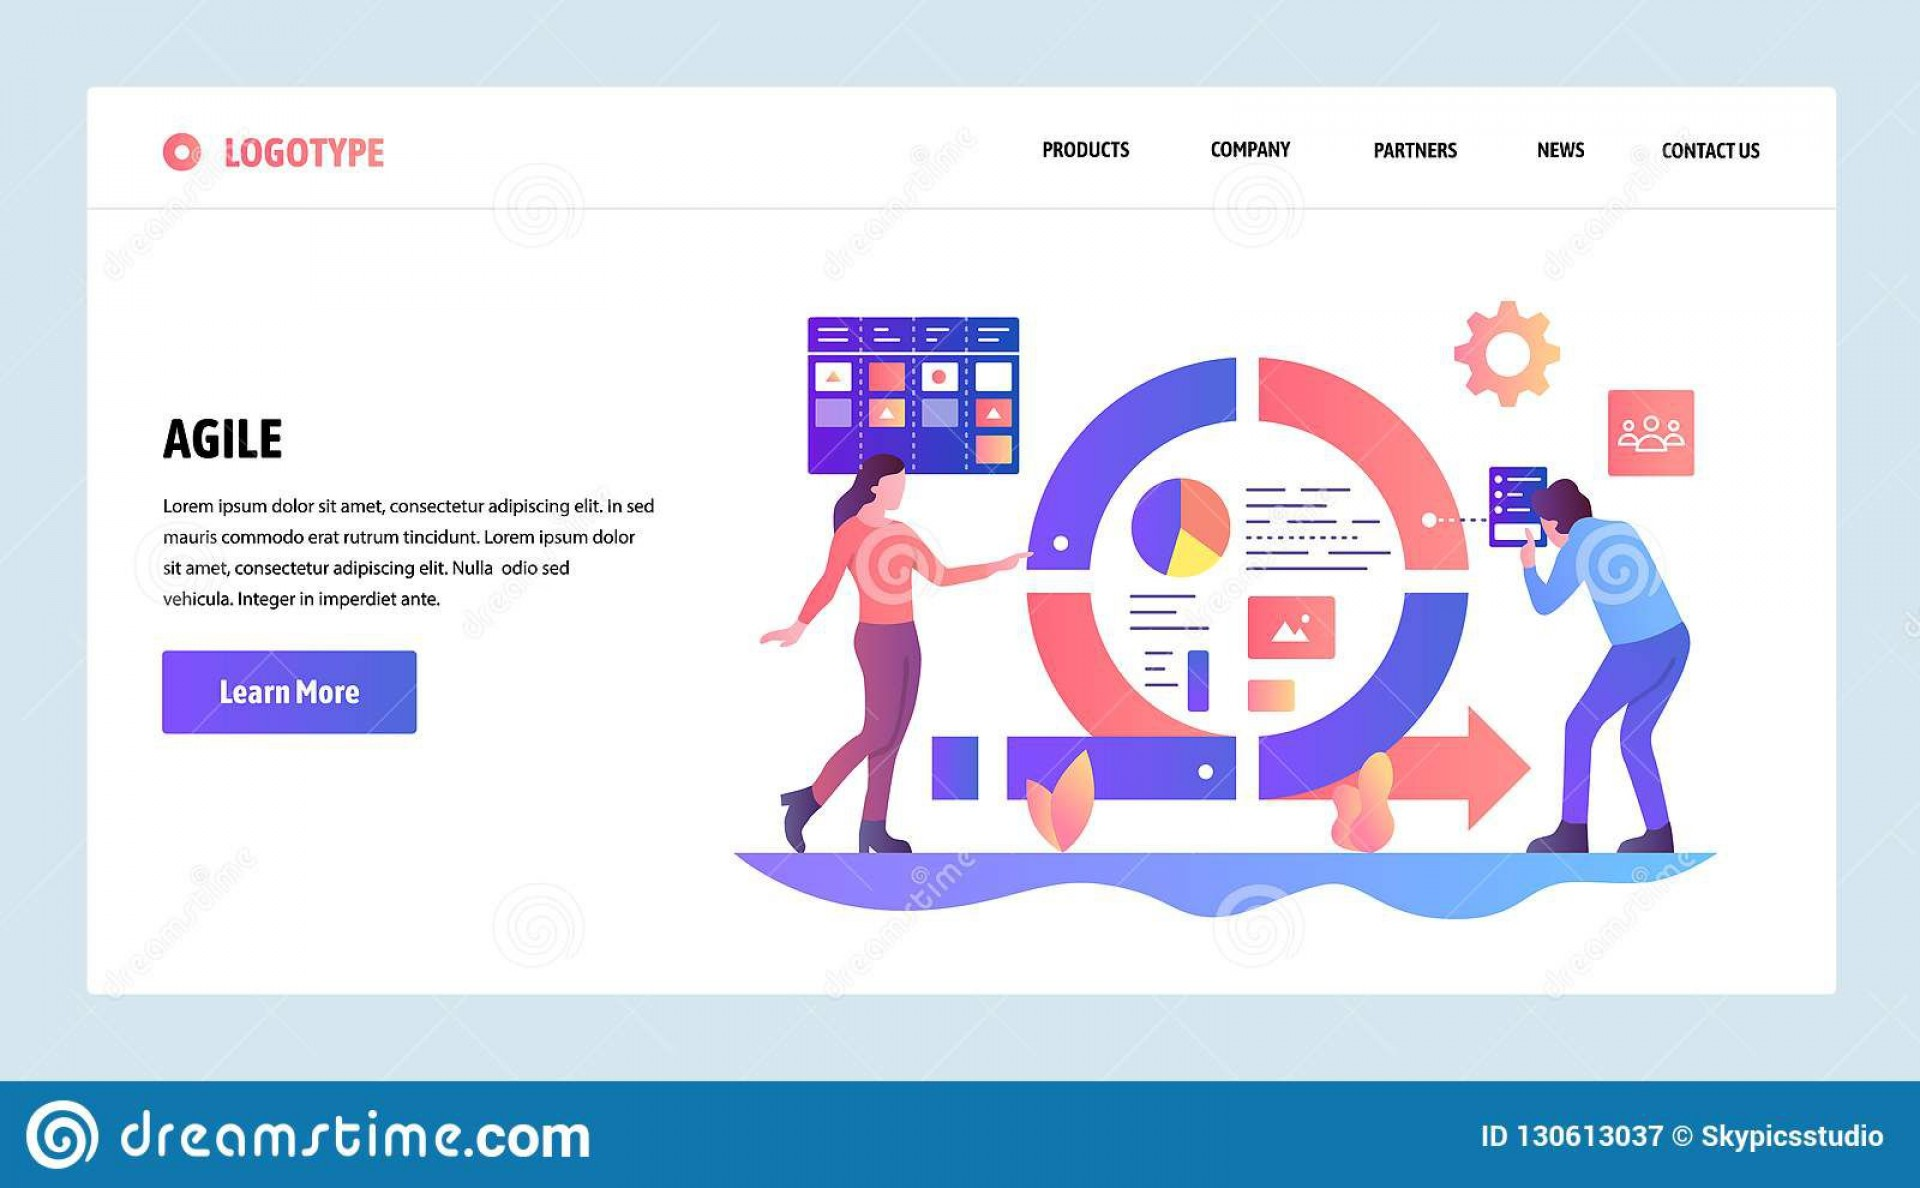 009 Formidable Agile Project Management Template Free Design  Excel1920